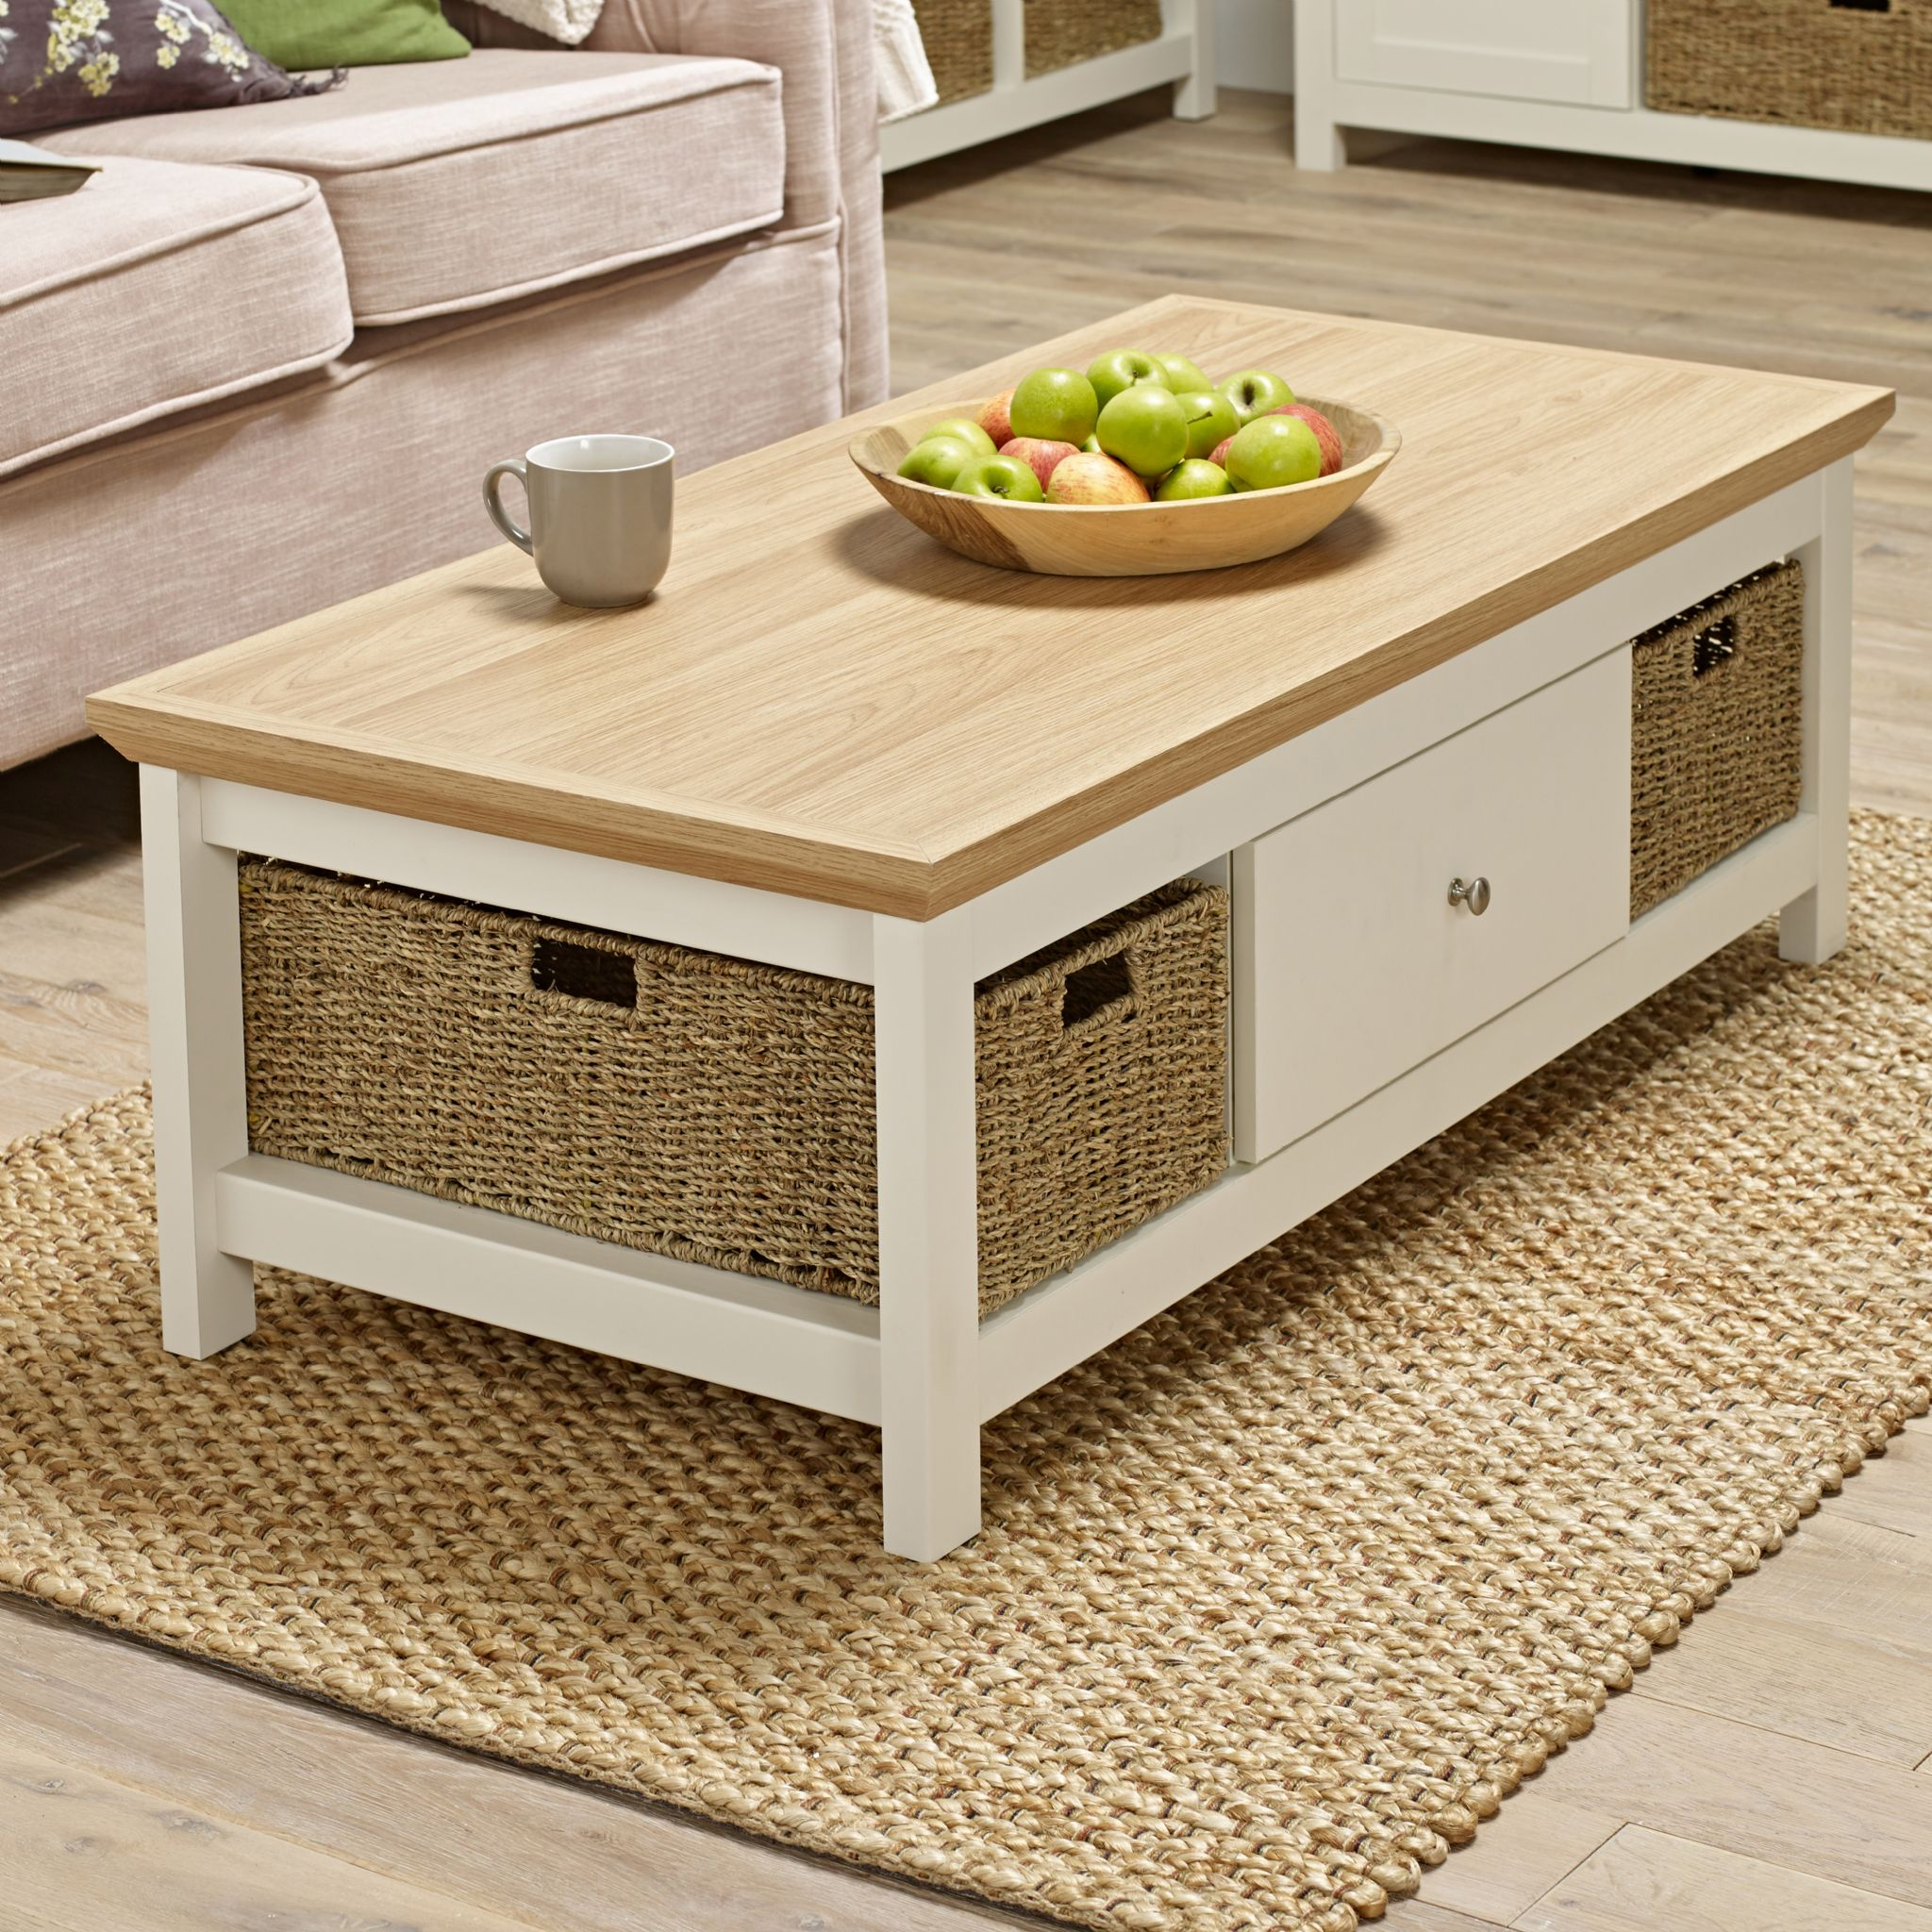 Excellent Off White Cream Oak Country Coffee Table With Basket Evergreenethics Interior Chair Design Evergreenethicsorg